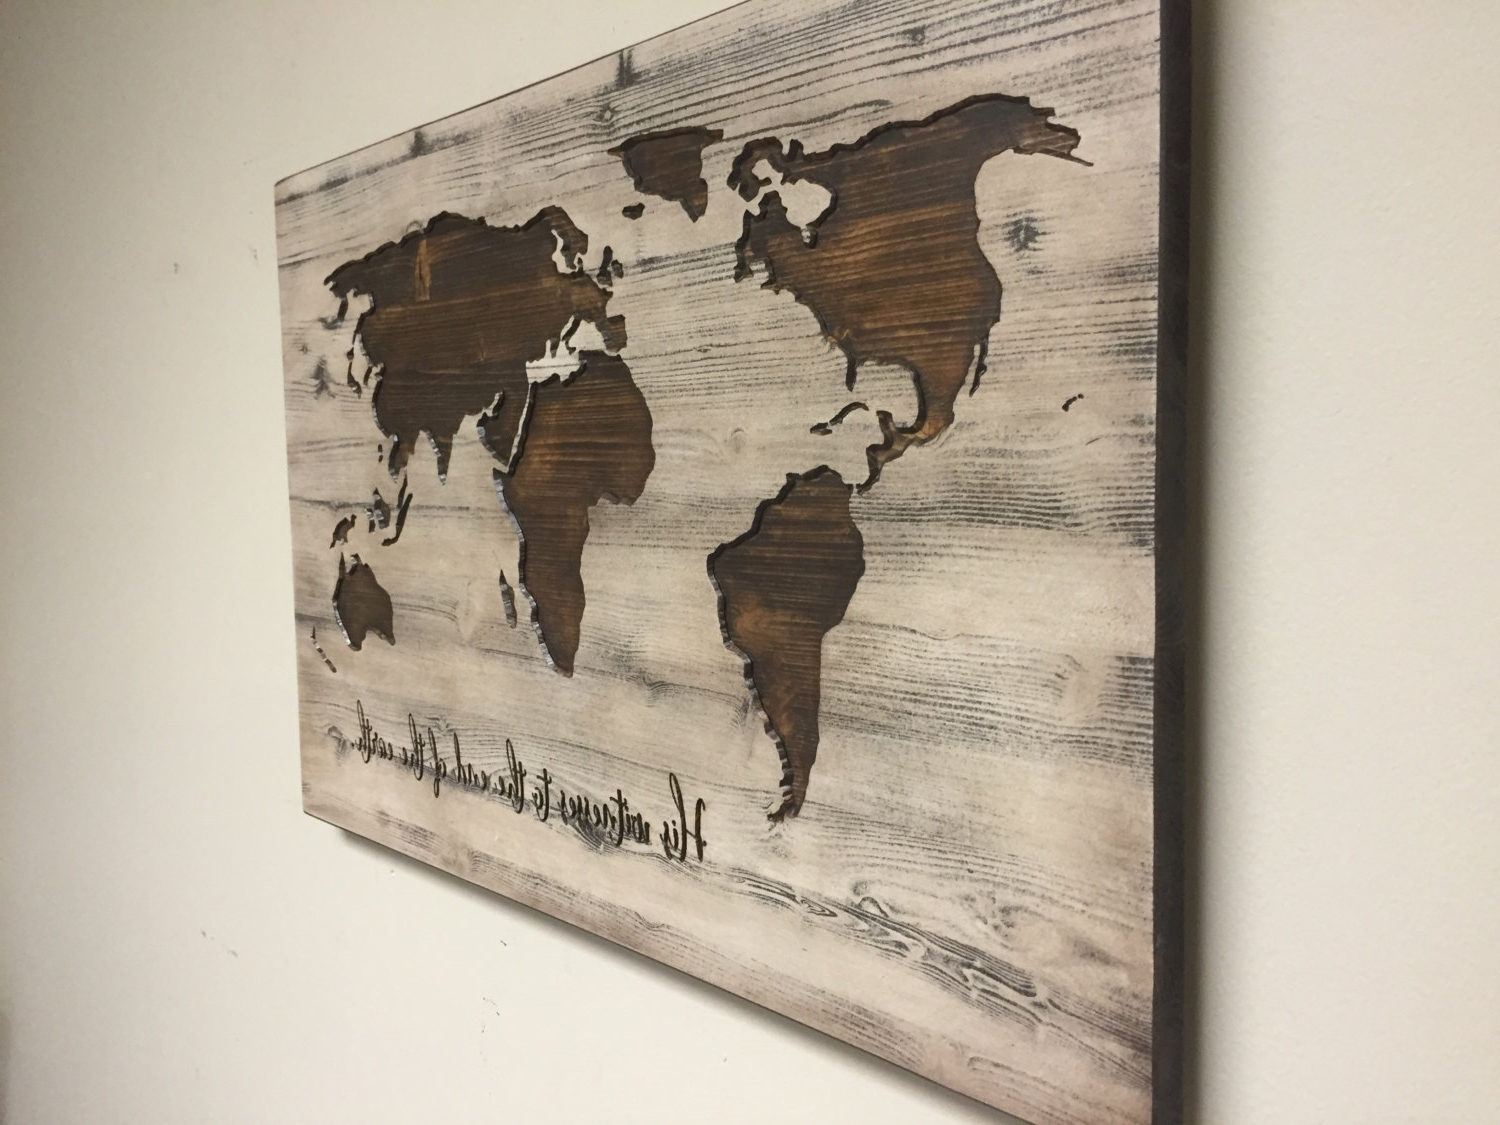 Newest Art Vintage Maps Wall Art Large Vintage Wall Art Old World Map At In Old World Map Wall Art (View 8 of 15)